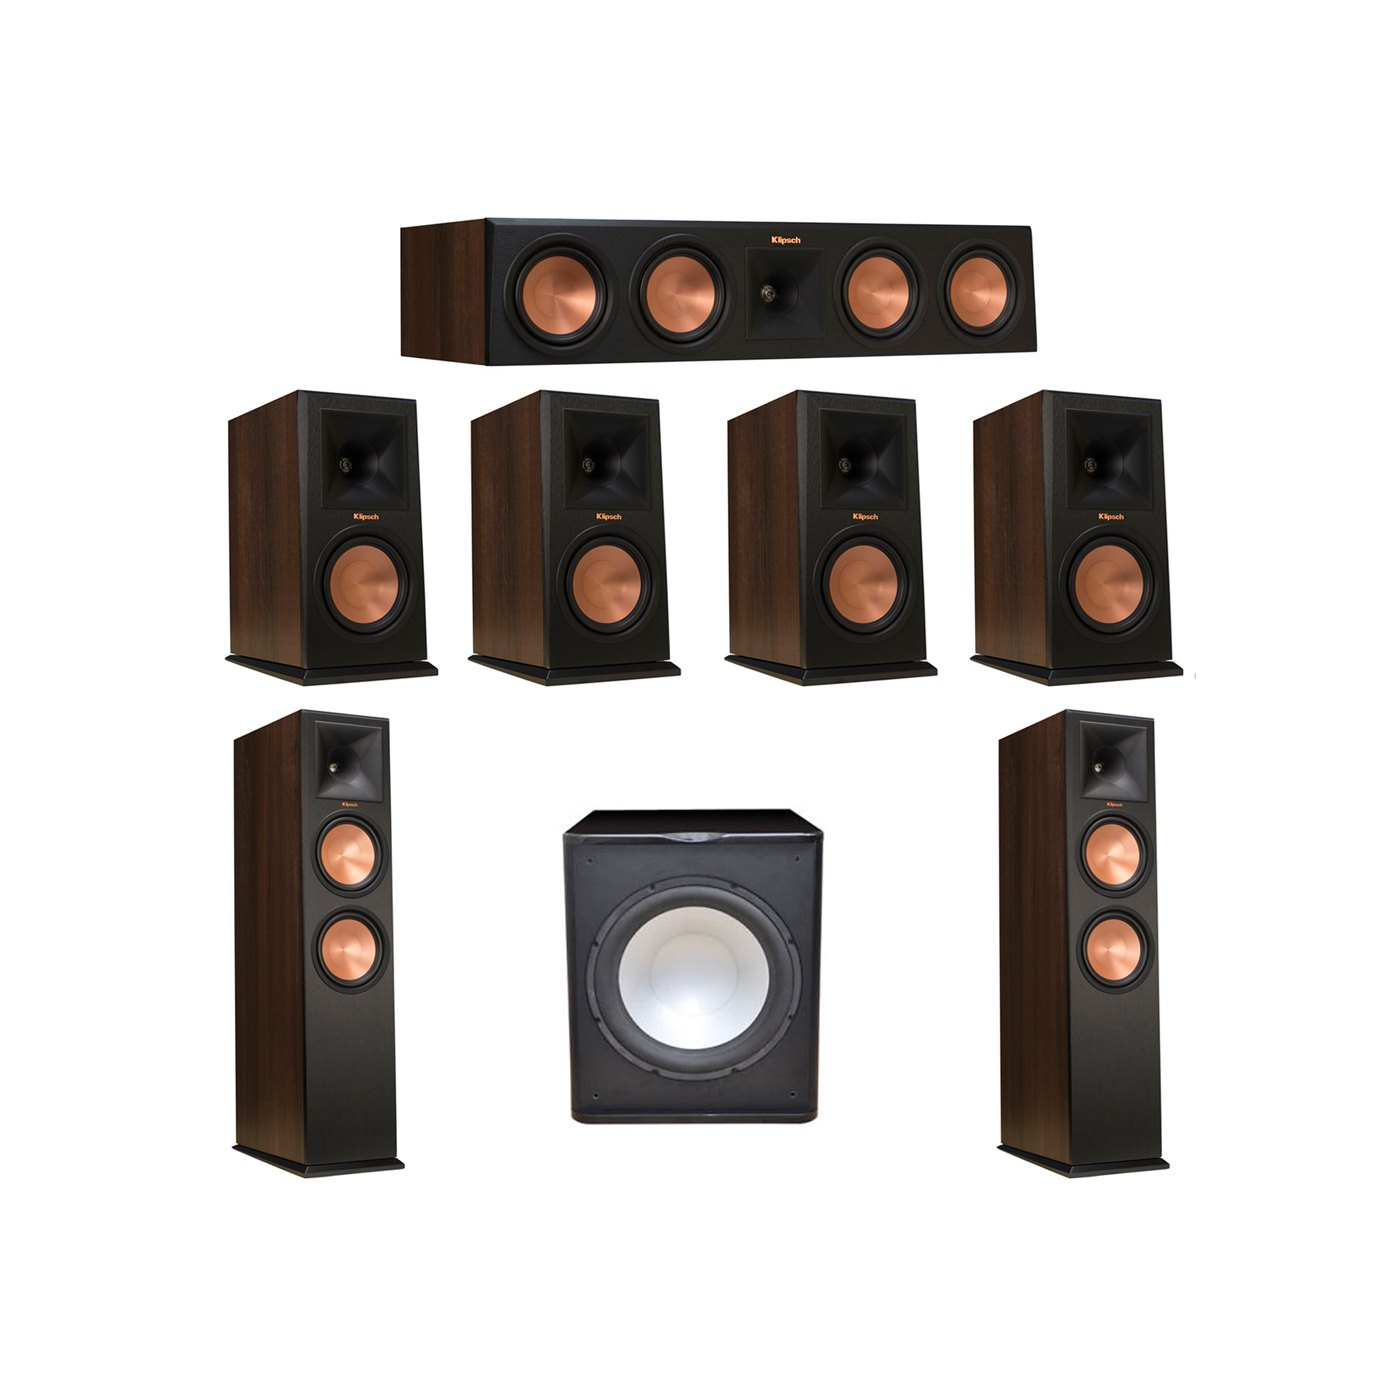 Klipsch 7.1 Walnut System with 2 RP-280F Tower Speakers, 1 RP-450C Center Speaker, 4 Klipsch RP-160M Bookshelf Speakers, 1 Premier Acoustic PA-150 Subwoofer